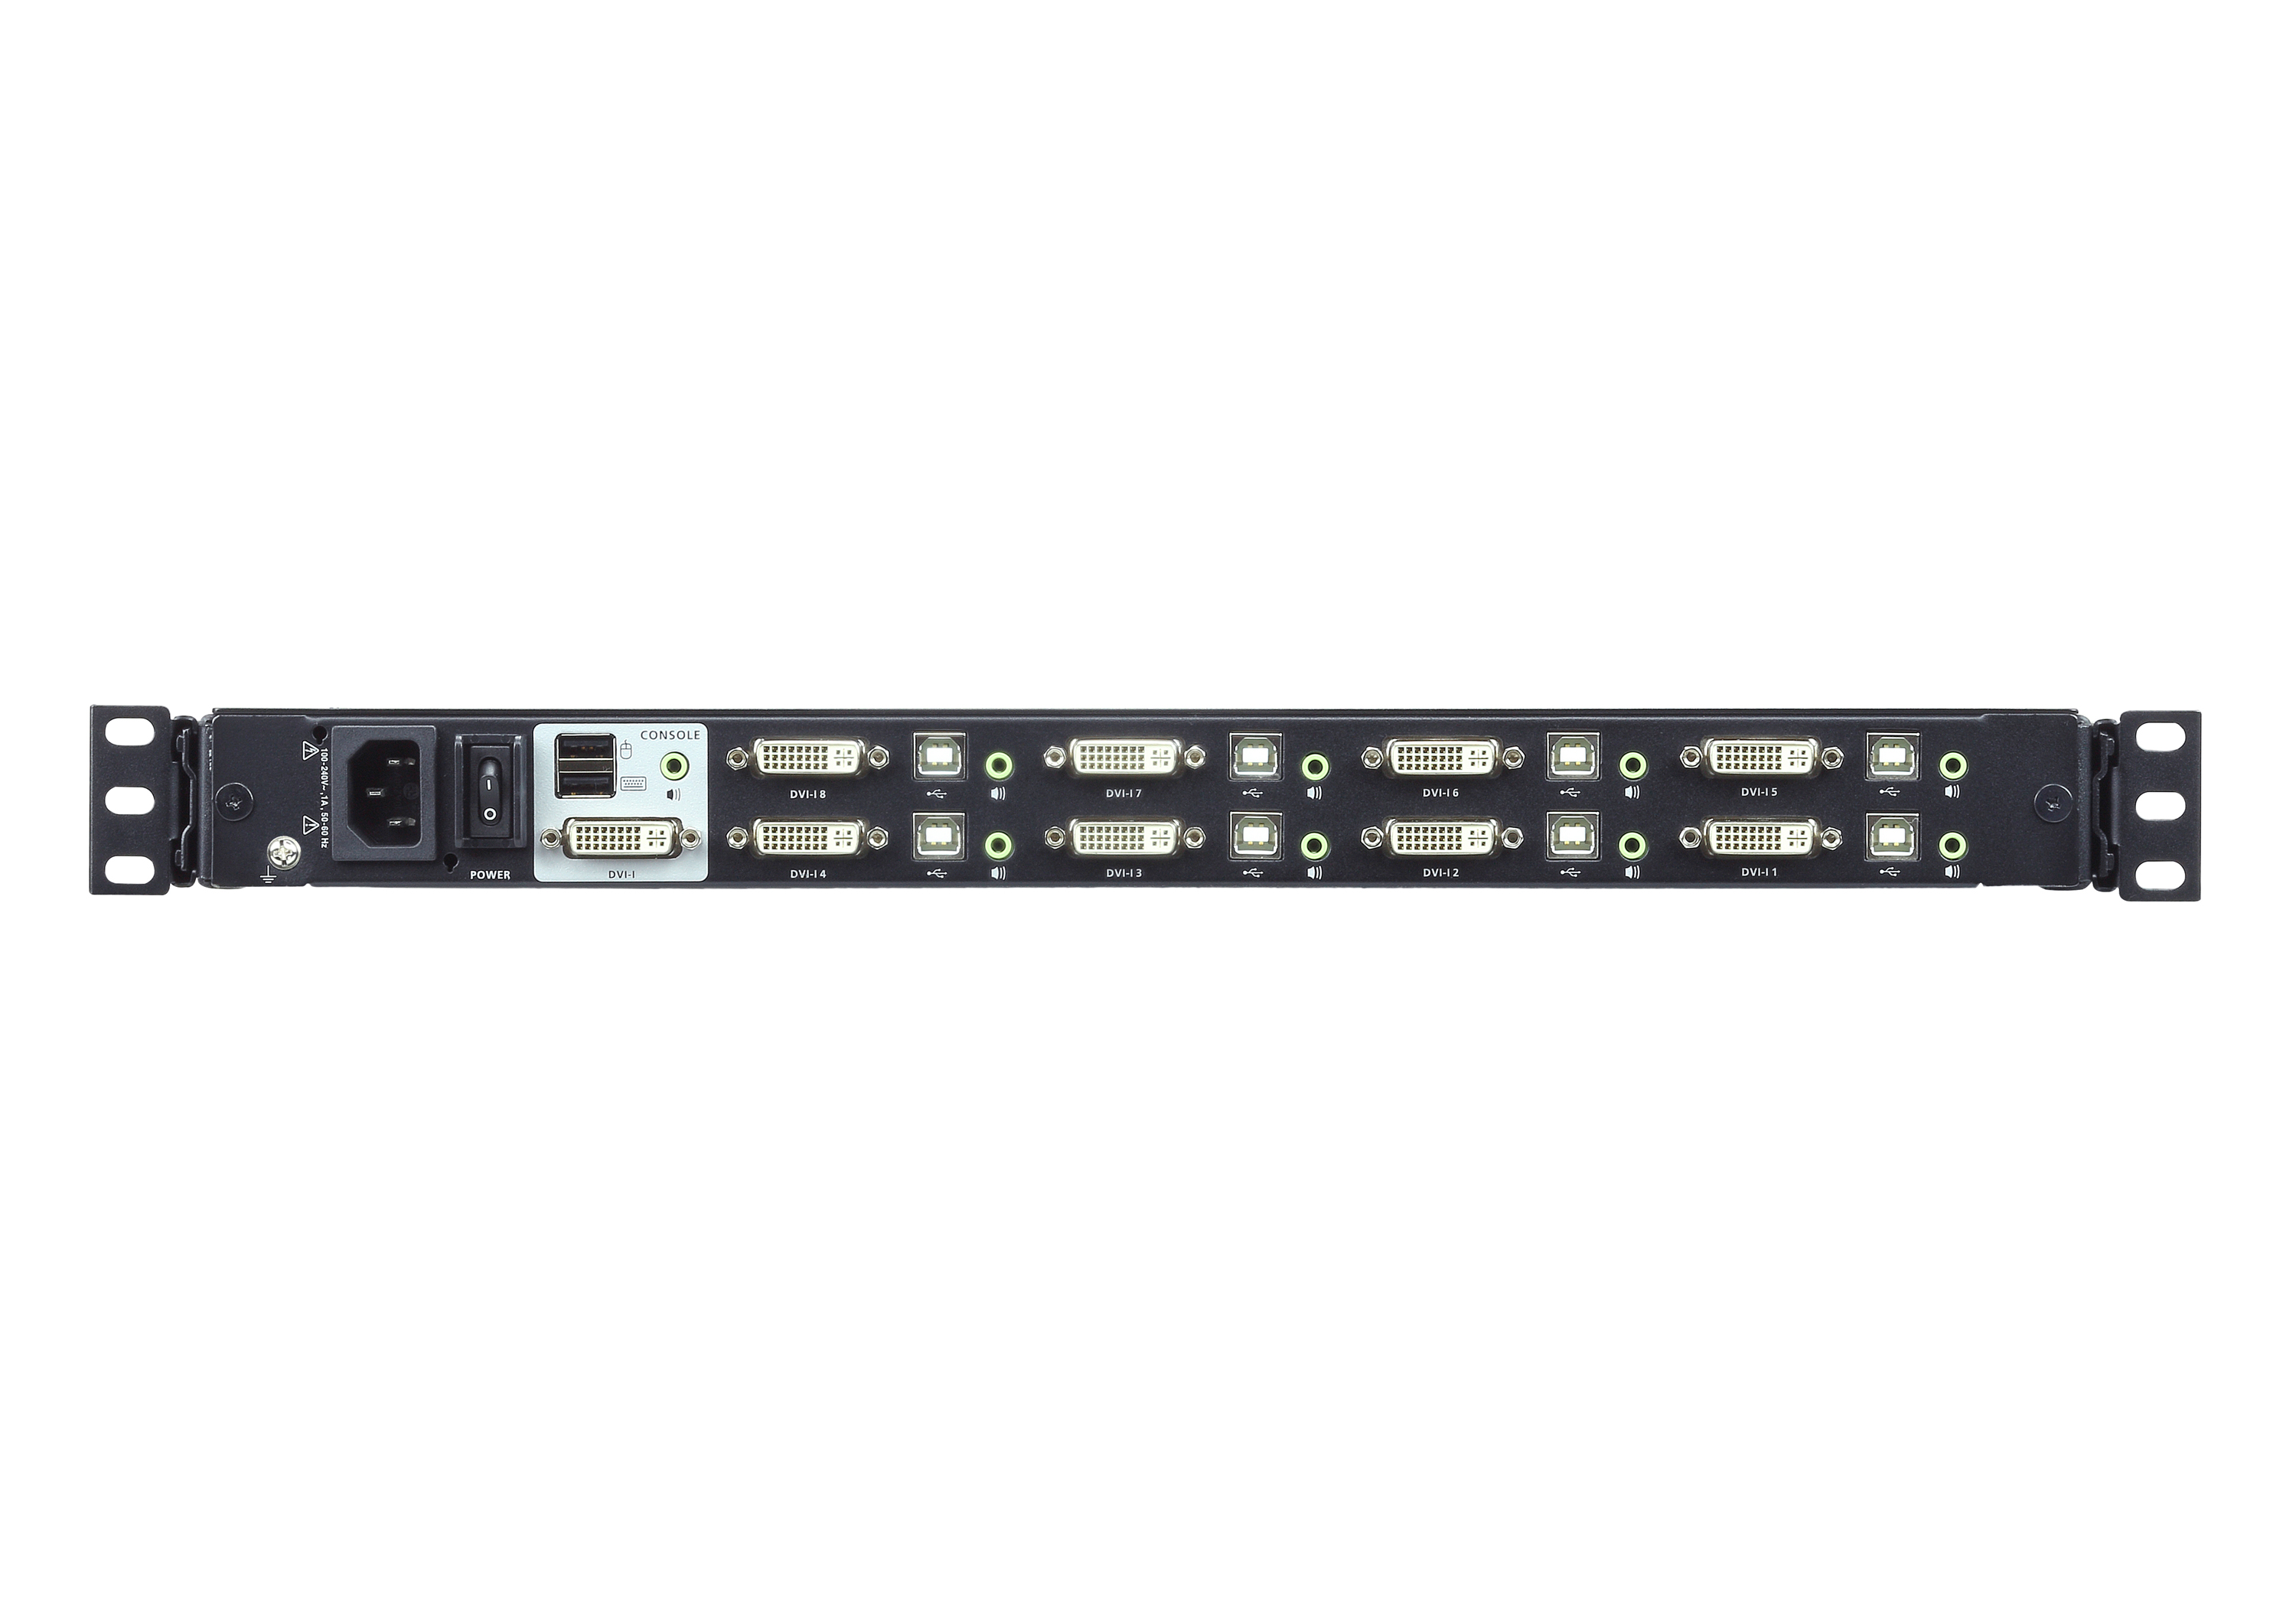 Consola LCD panorámica single rail con switch KVM integrado DVI USB de 8 puertos-2